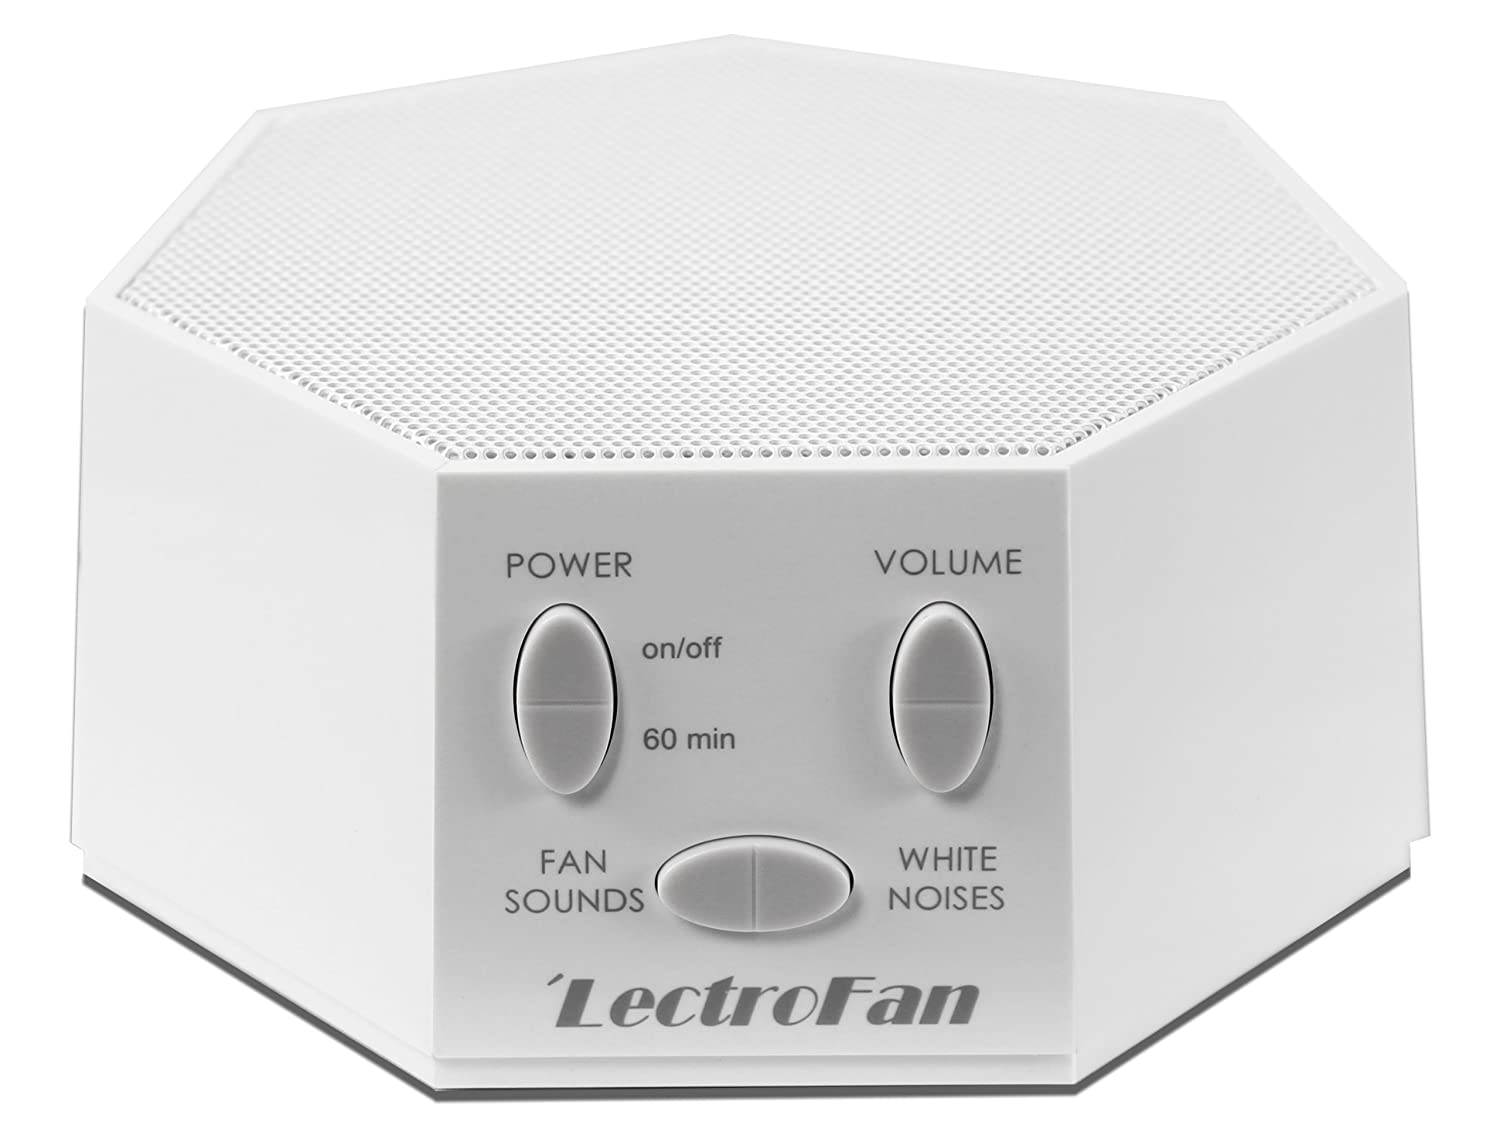 LectroFan High Fidelity White Noise Machine with 20 Unique Non-Looping Fan and White Noise Sounds and Sleep Timer